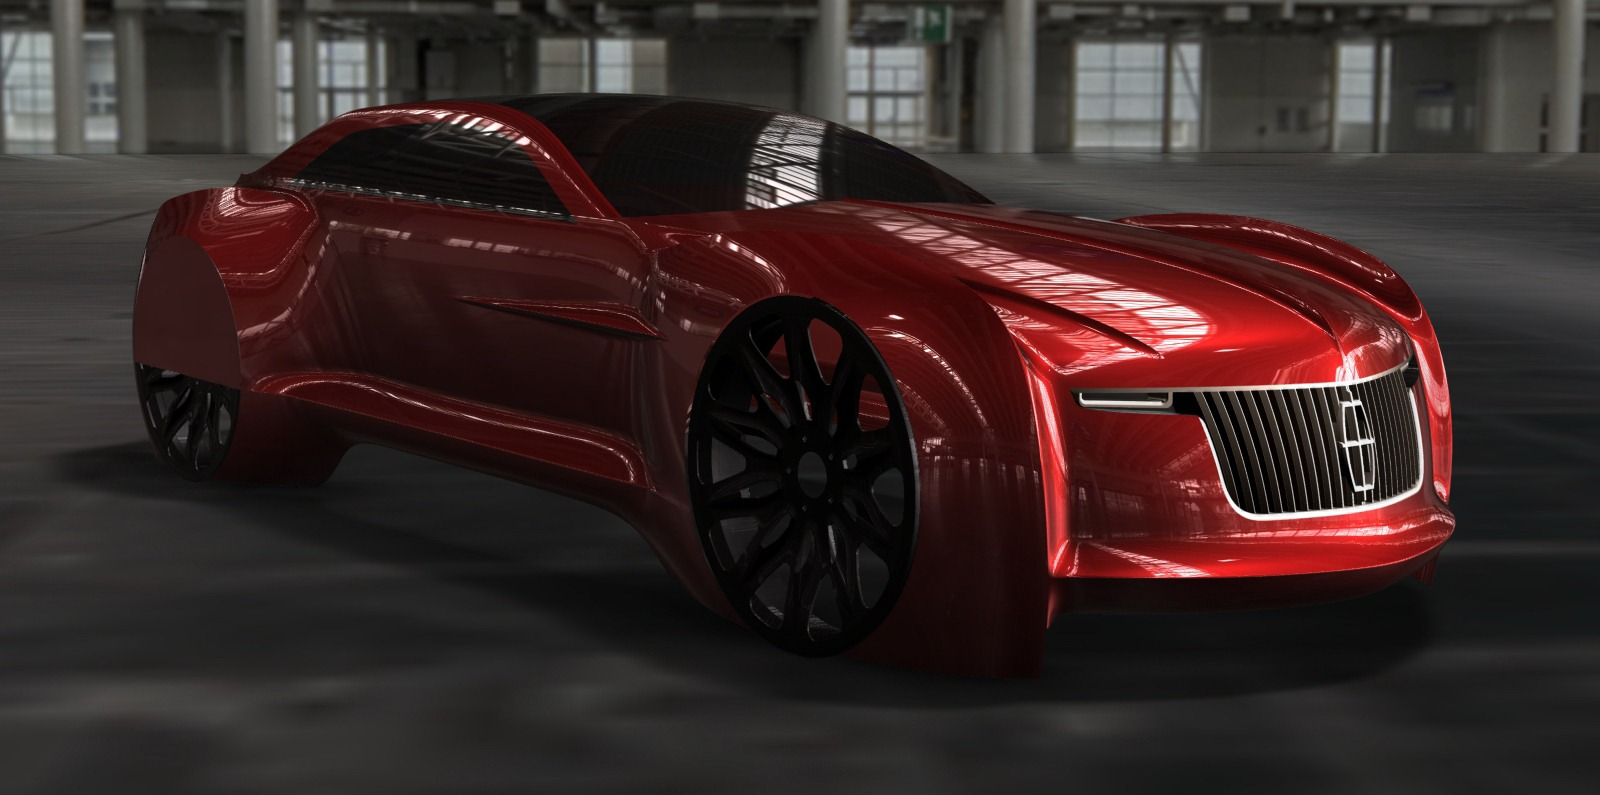 2025 lincoln continental concept from story 2025 lincoln continental